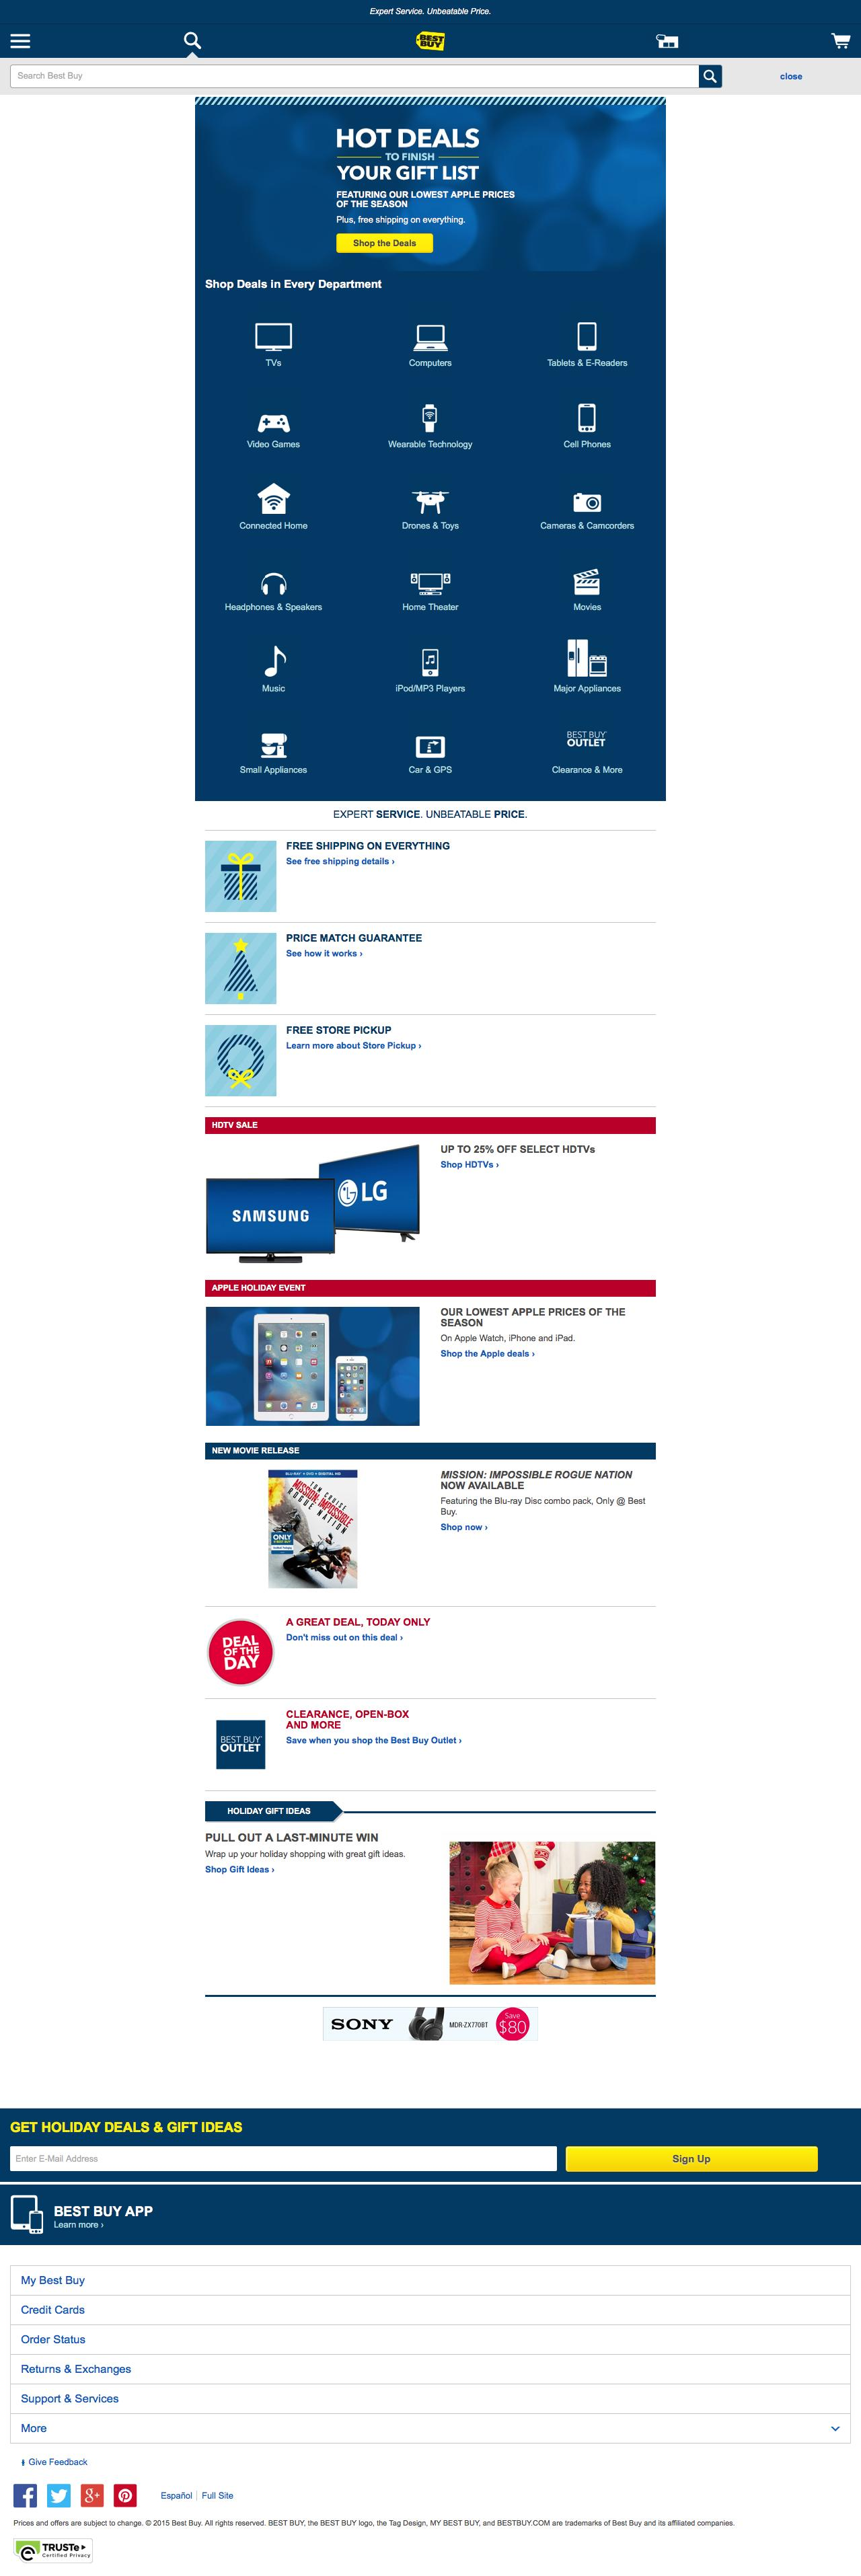 A page on bestbuy.com in the collection \